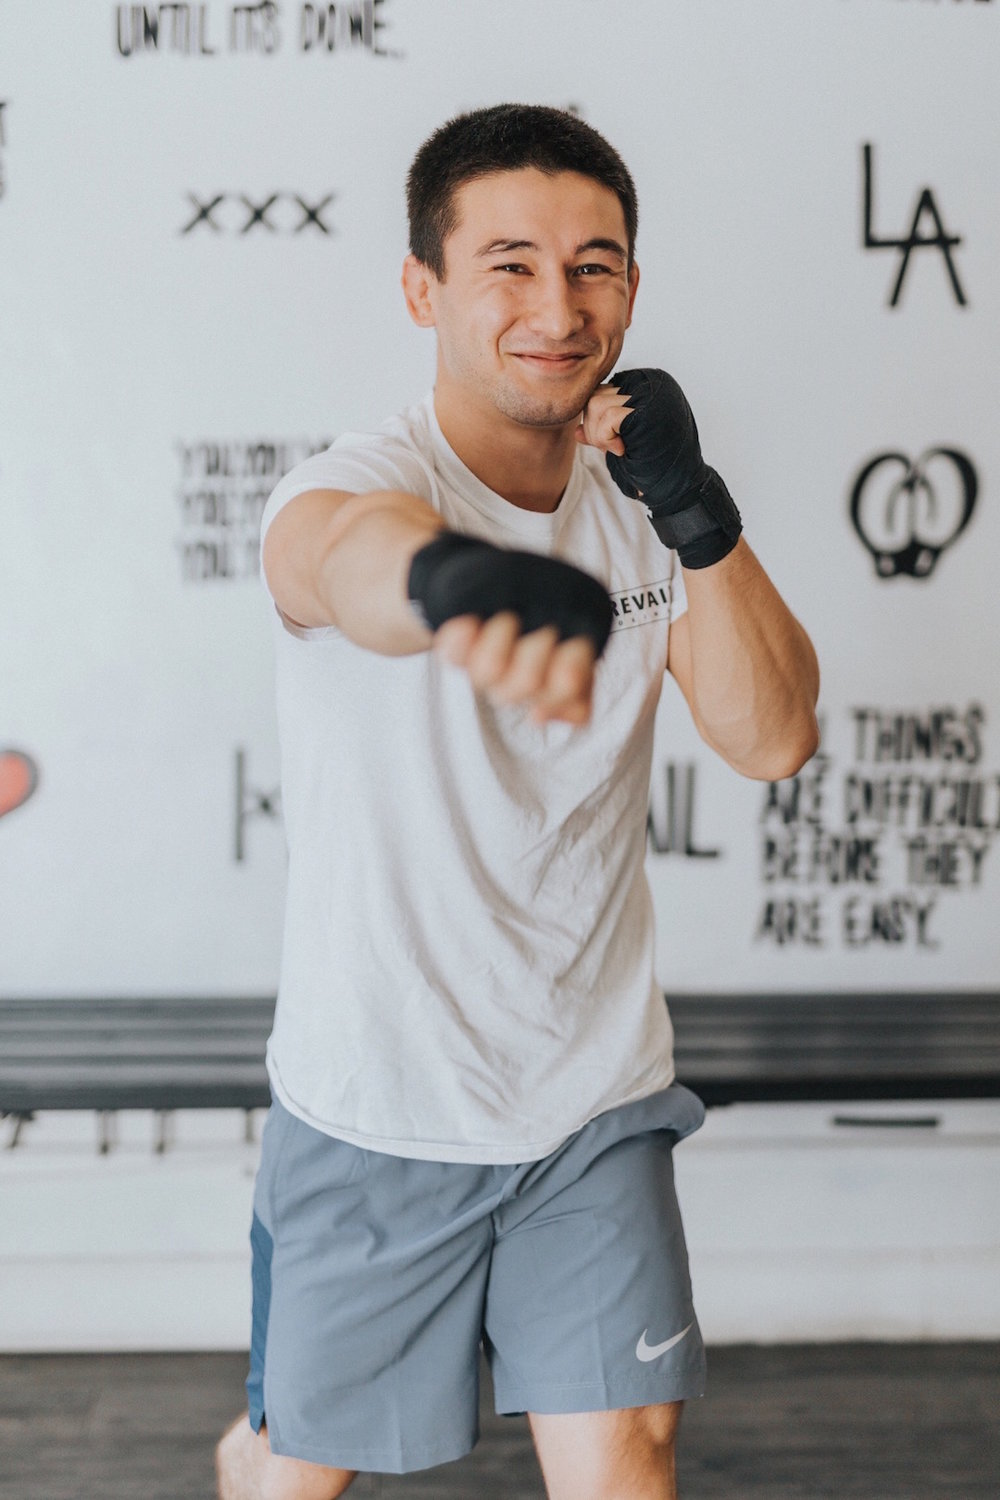 Originally from:  Greensburg, PA   How he learned to hit so hard:  2+ years of boxing. 8+ years of Muay Thai & Jiu Jitsu.   Favorite workout song:  The Heavy –  How You Like Me Now    Go-to inspiration:  Most people quit at 40% of what they are capable of. Don't be most people.   Workout with Gavin if:  you want a sharp technical eye to help you master and understand the fundamentals, so you can grow into more advanced concepts.   Gloves off, you can catch Gavin Prevailing:  cooking insane feasts & devouring them himself.